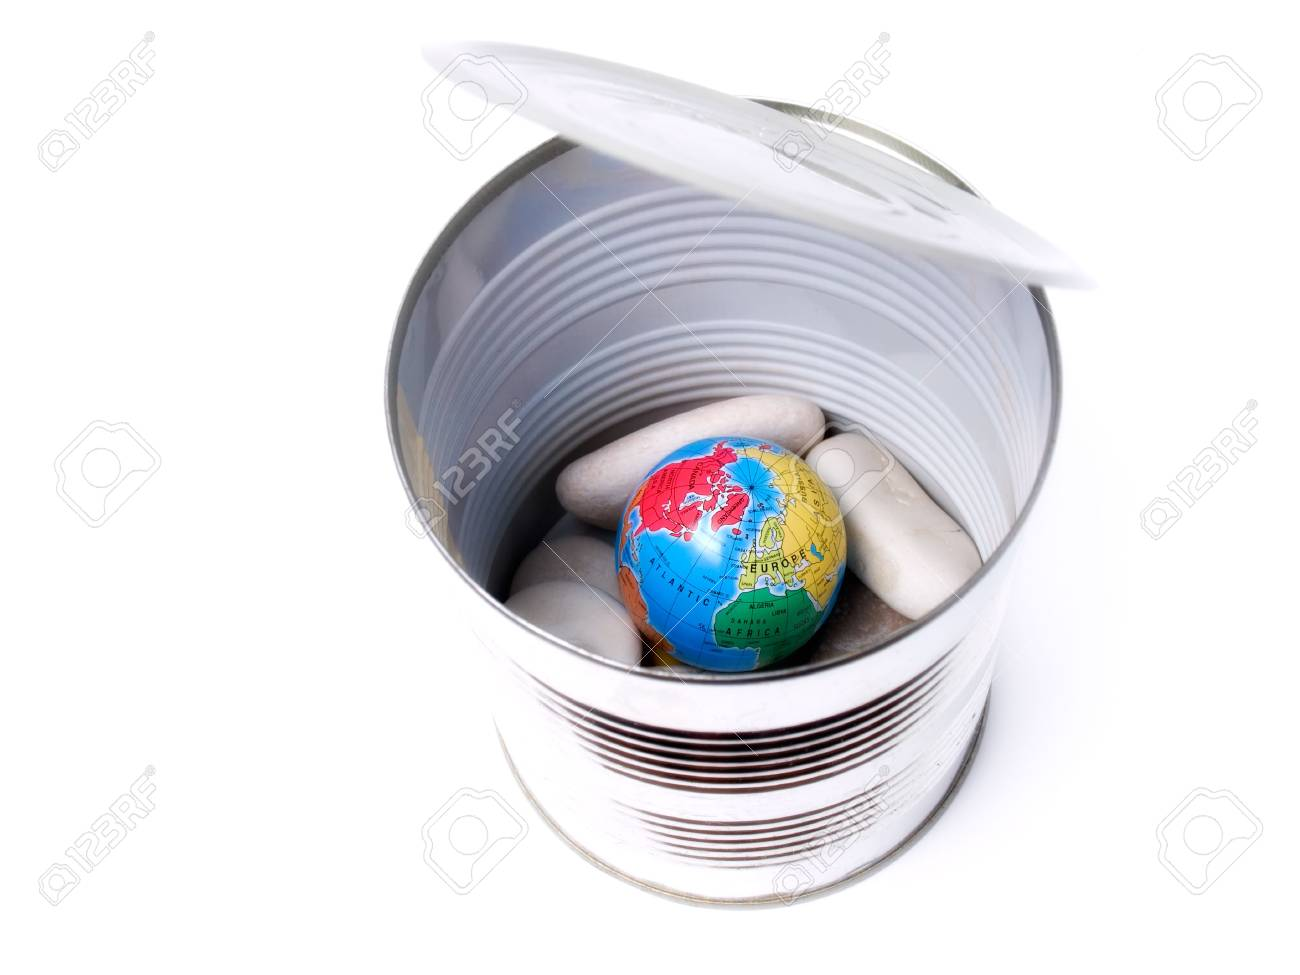 Earth globe mixed with stones in a conservator on a white background Stock Photo - 7700443